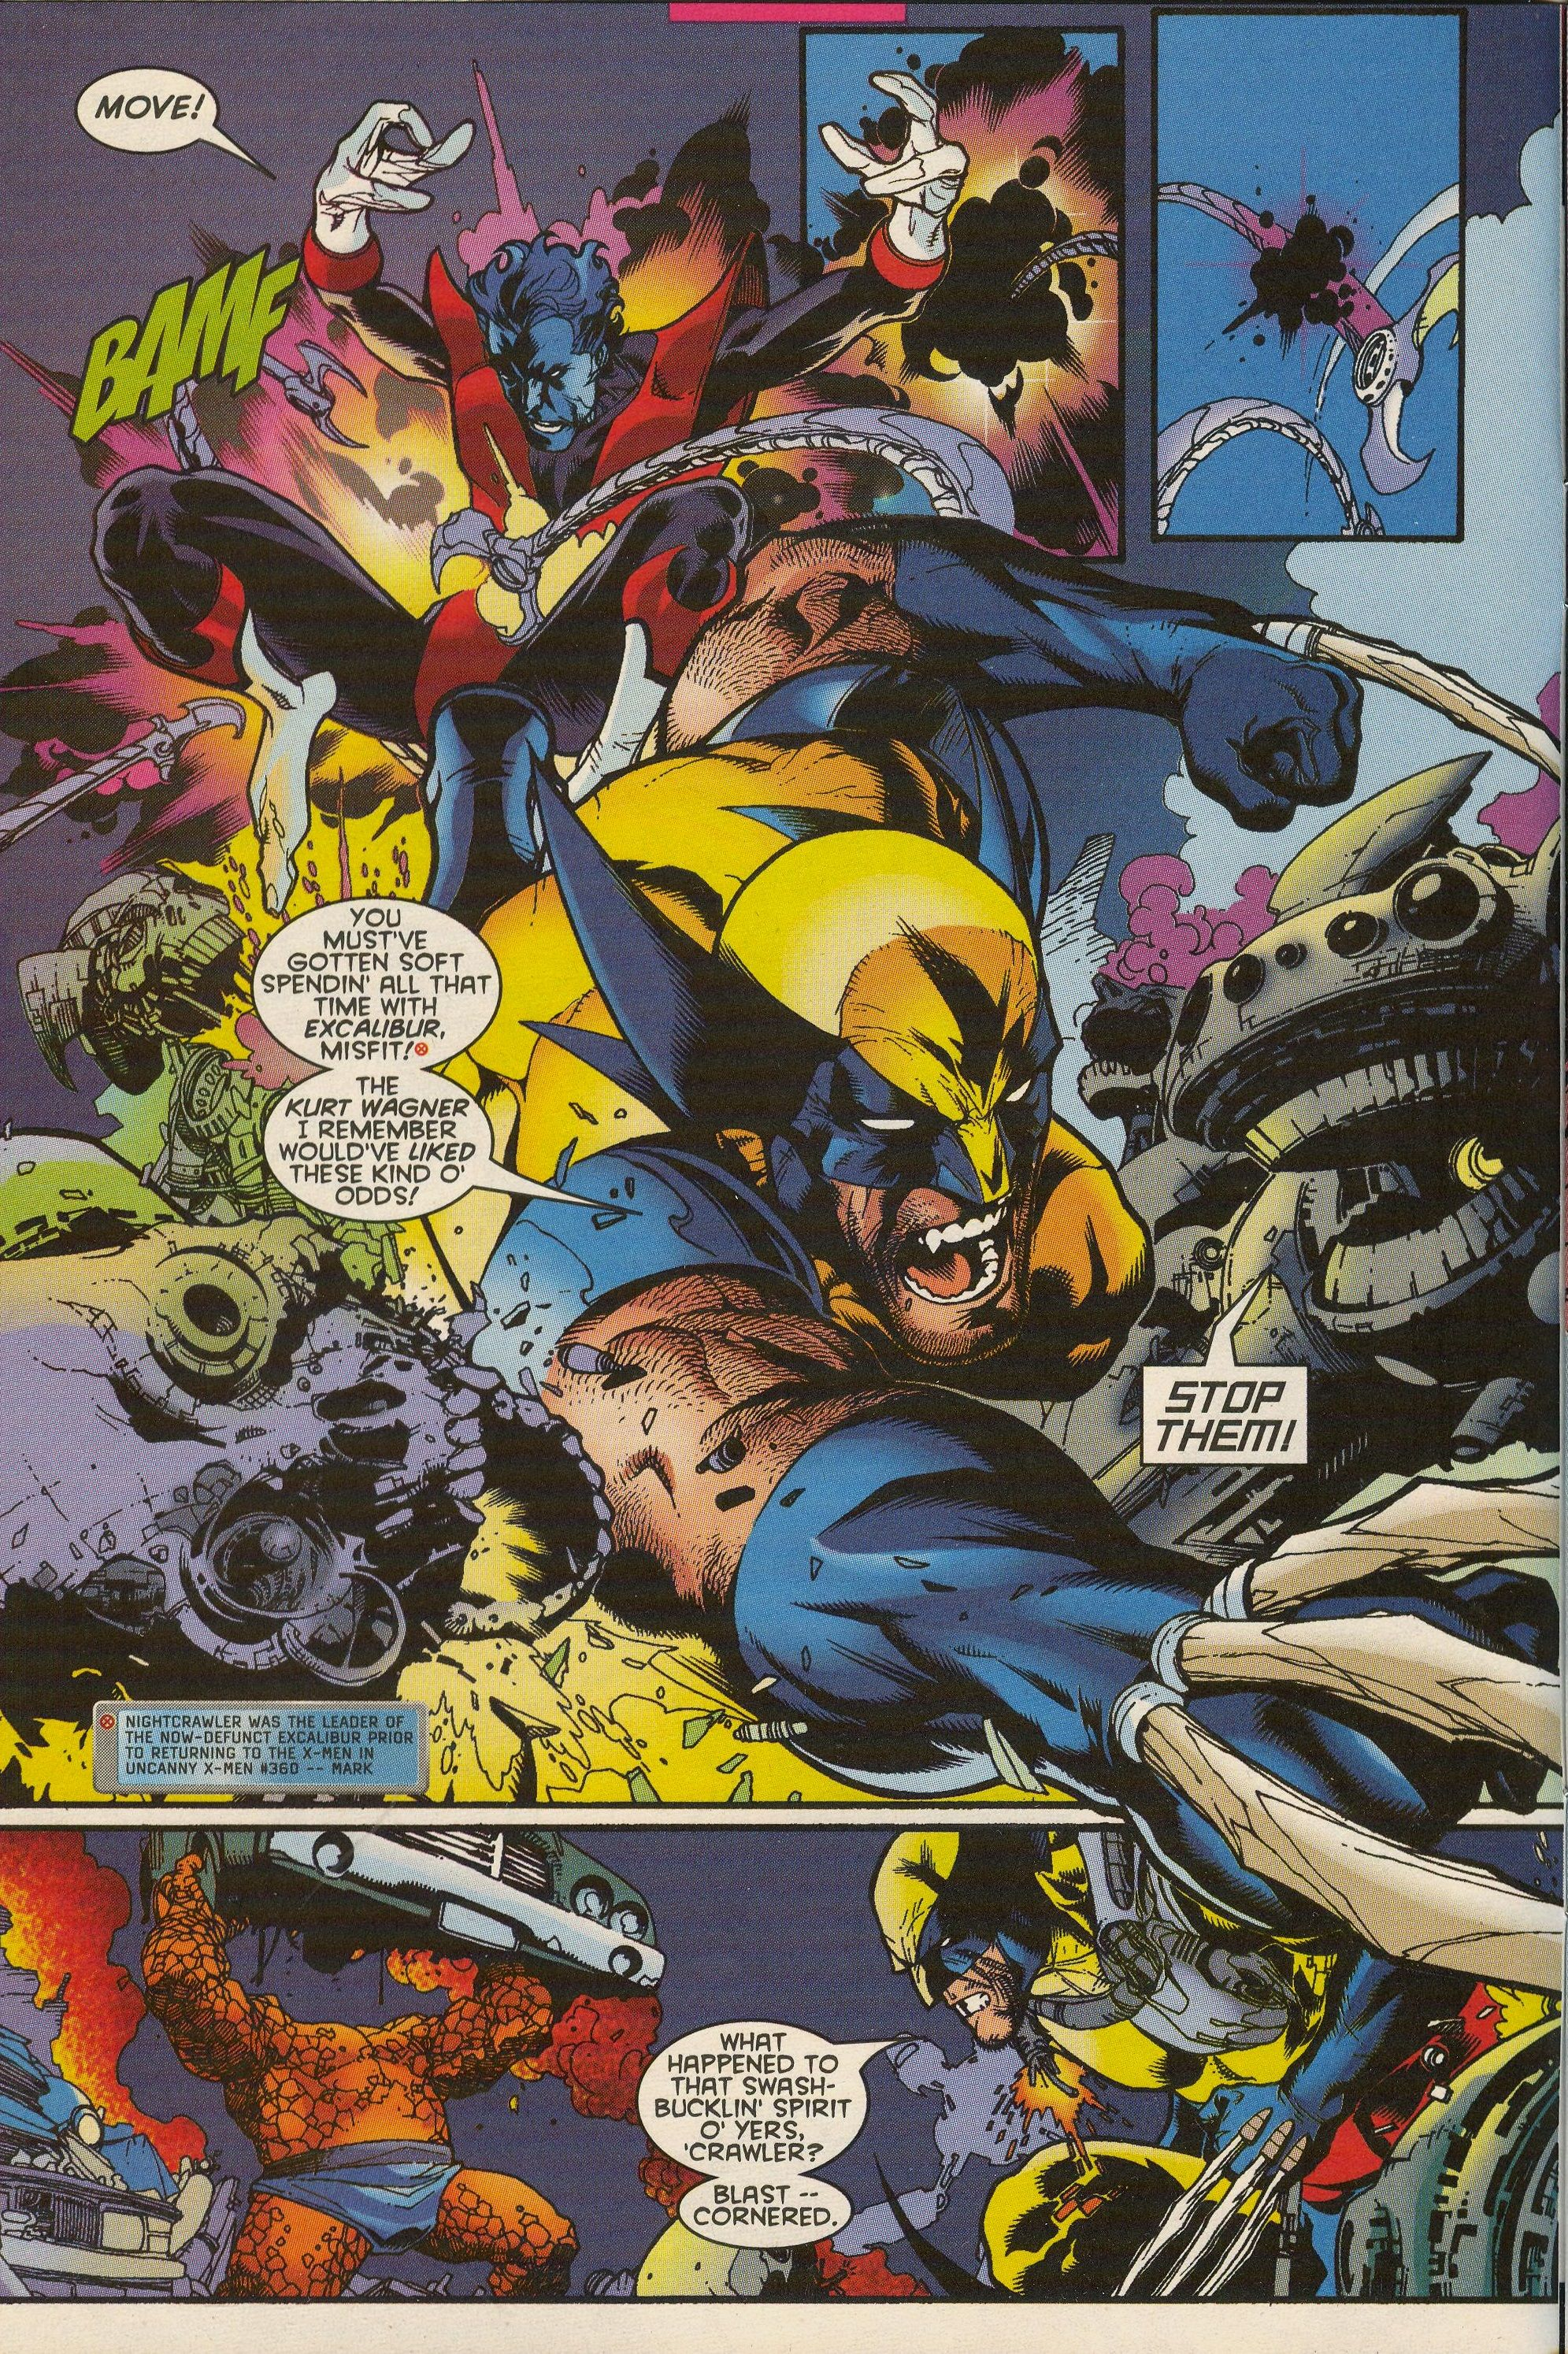 Getting Soft From Wolverine 140 Jul 1999 Nightcrawler The Incredibles Splash Page